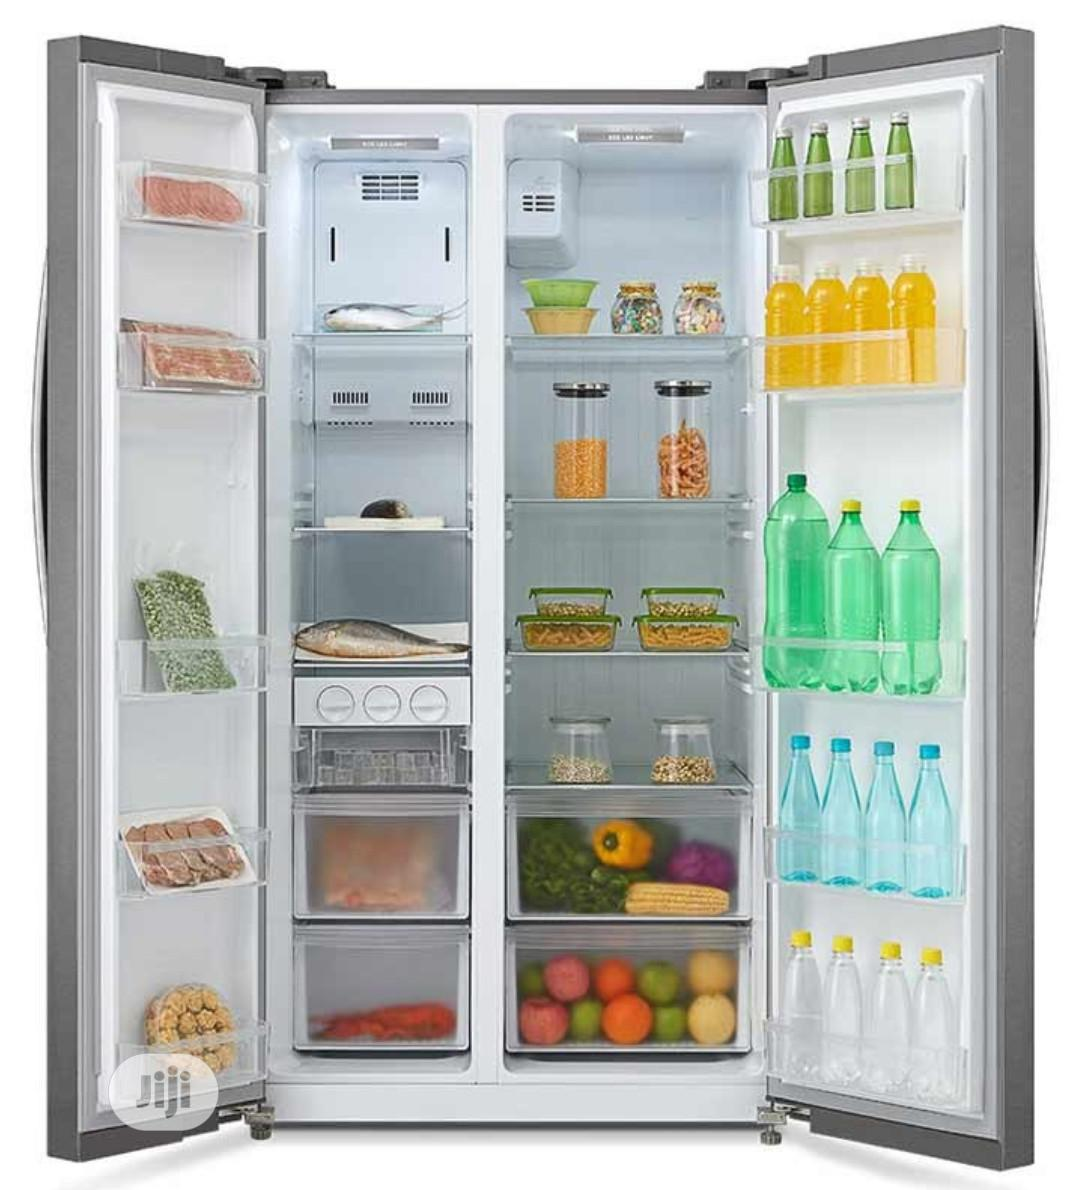 510 Litres Midea Side By Side Refrigerator HC-689WEN | Kitchen Appliances for sale in Ojo, Lagos State, Nigeria